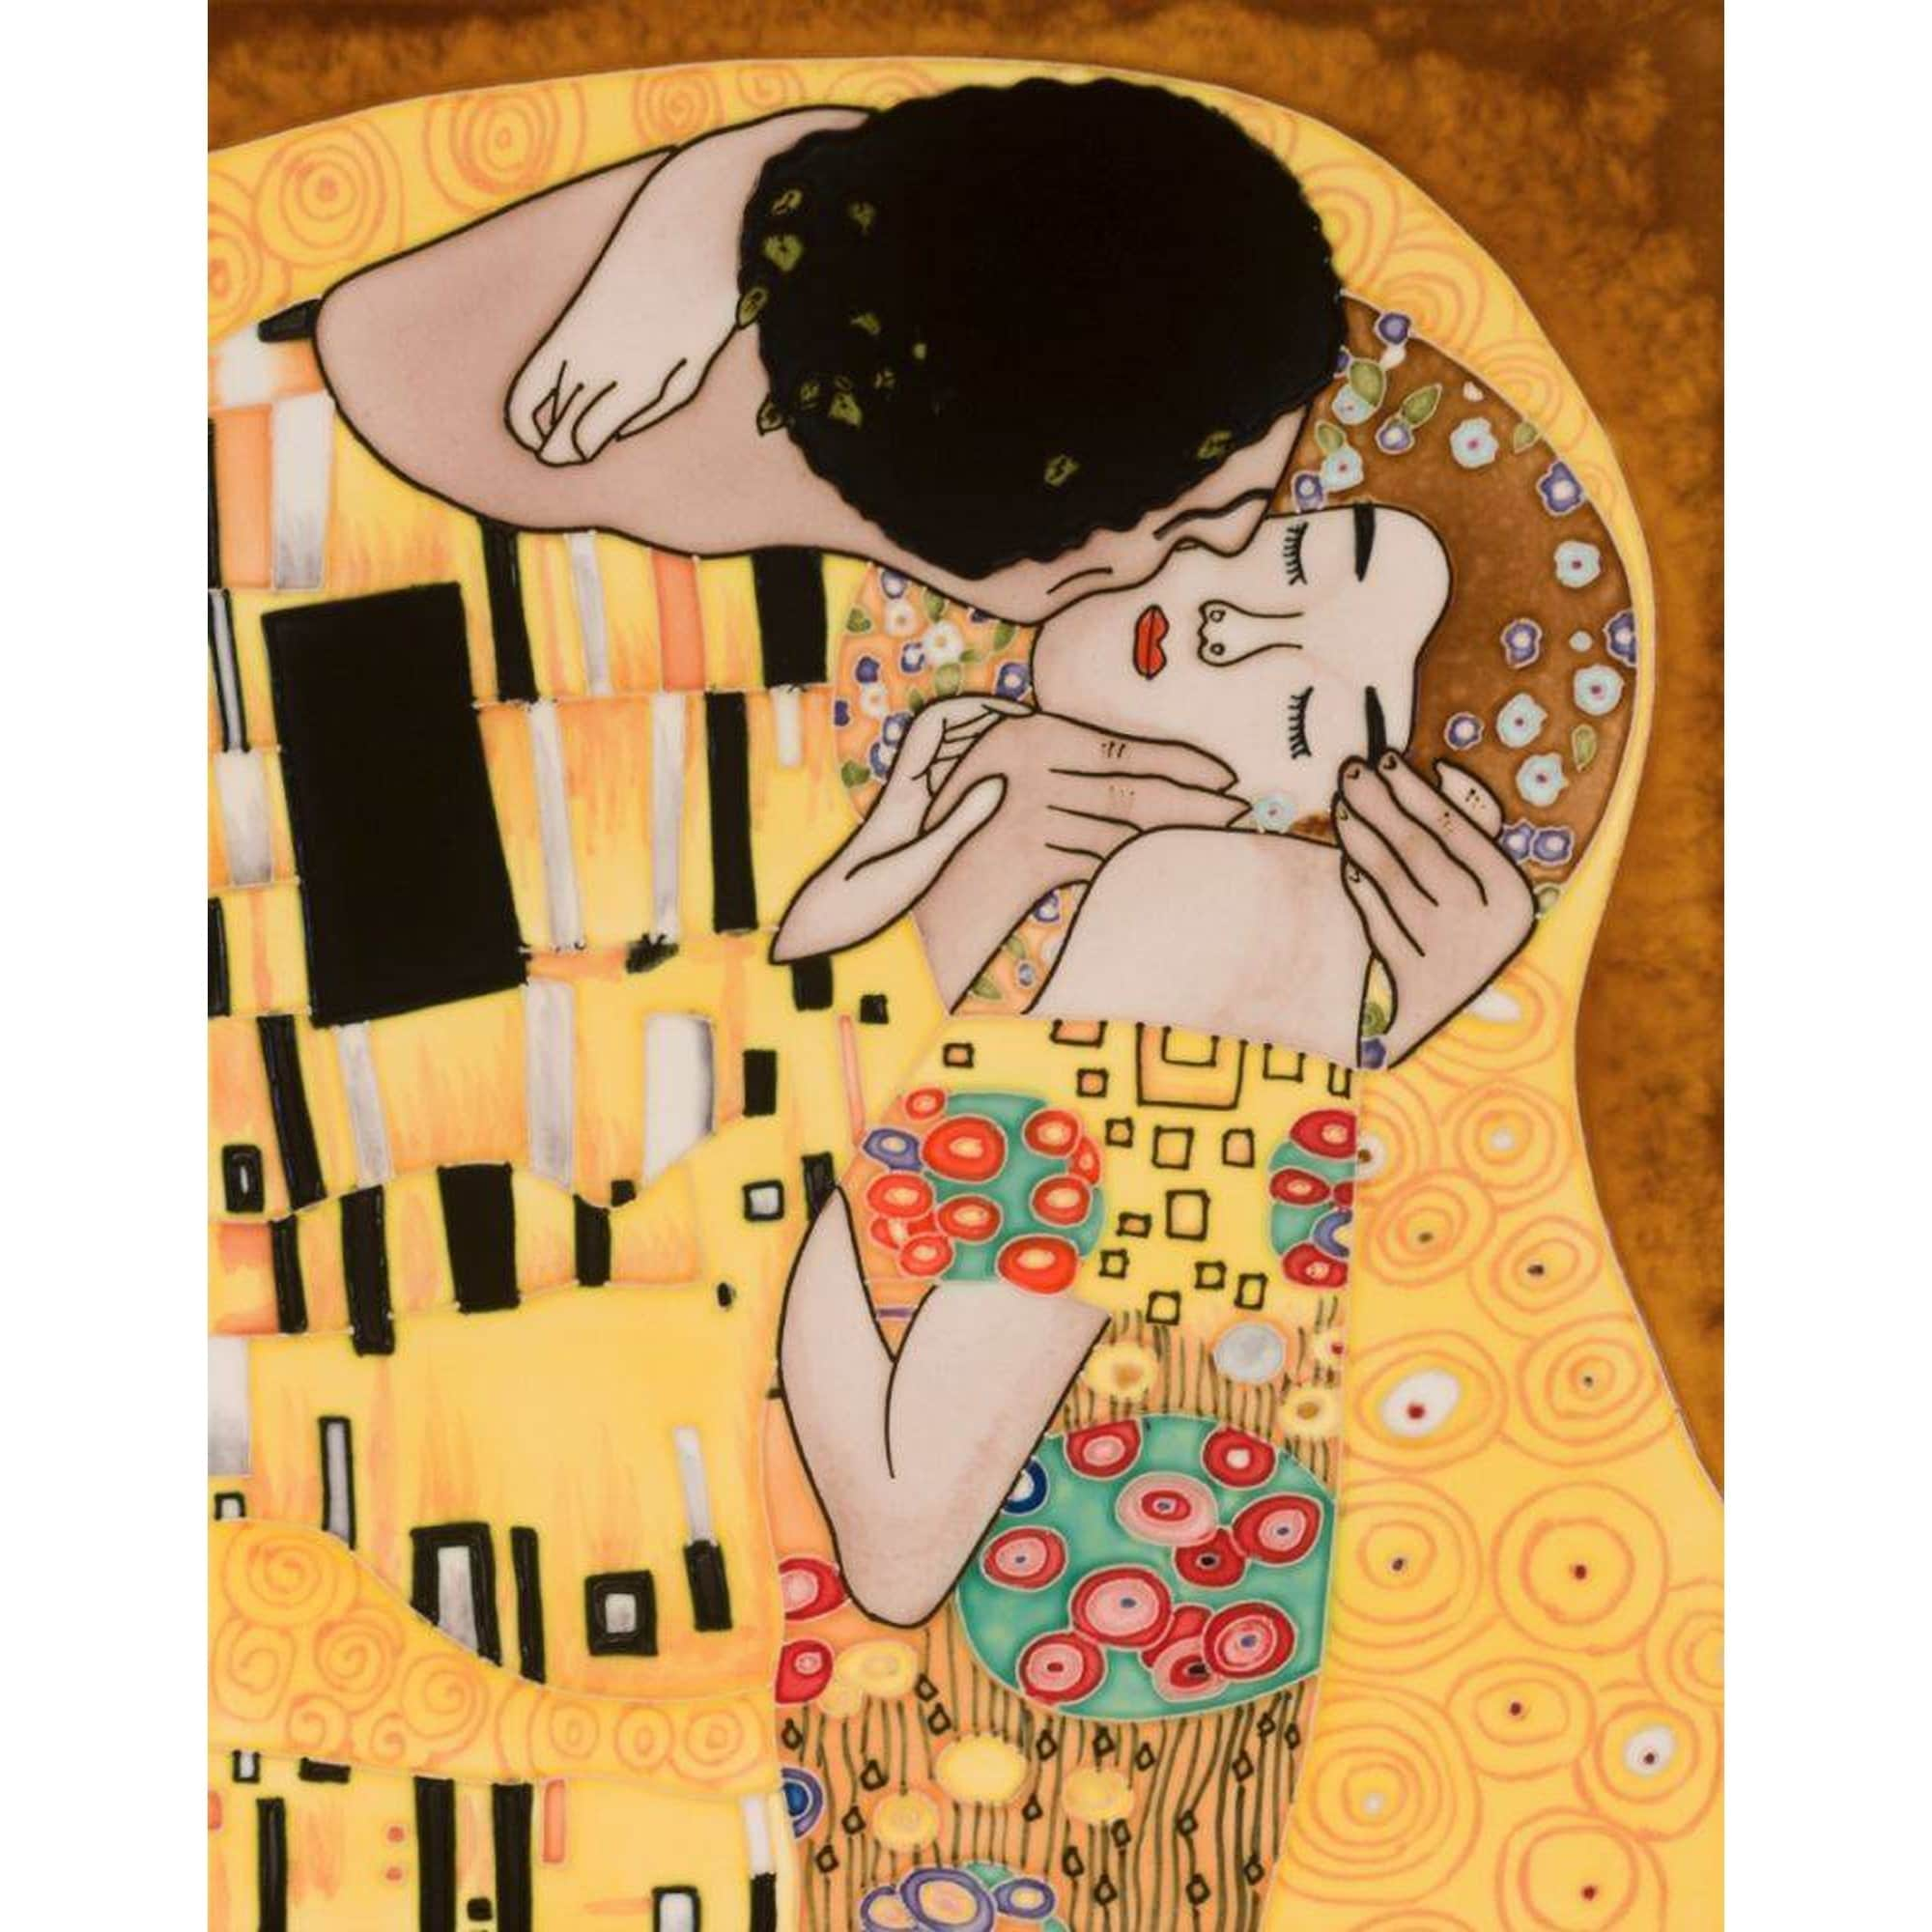 La Pastiche Gustav Klimt 'The Kiss' Hand Painted Felt Backed Wall Accent Tile